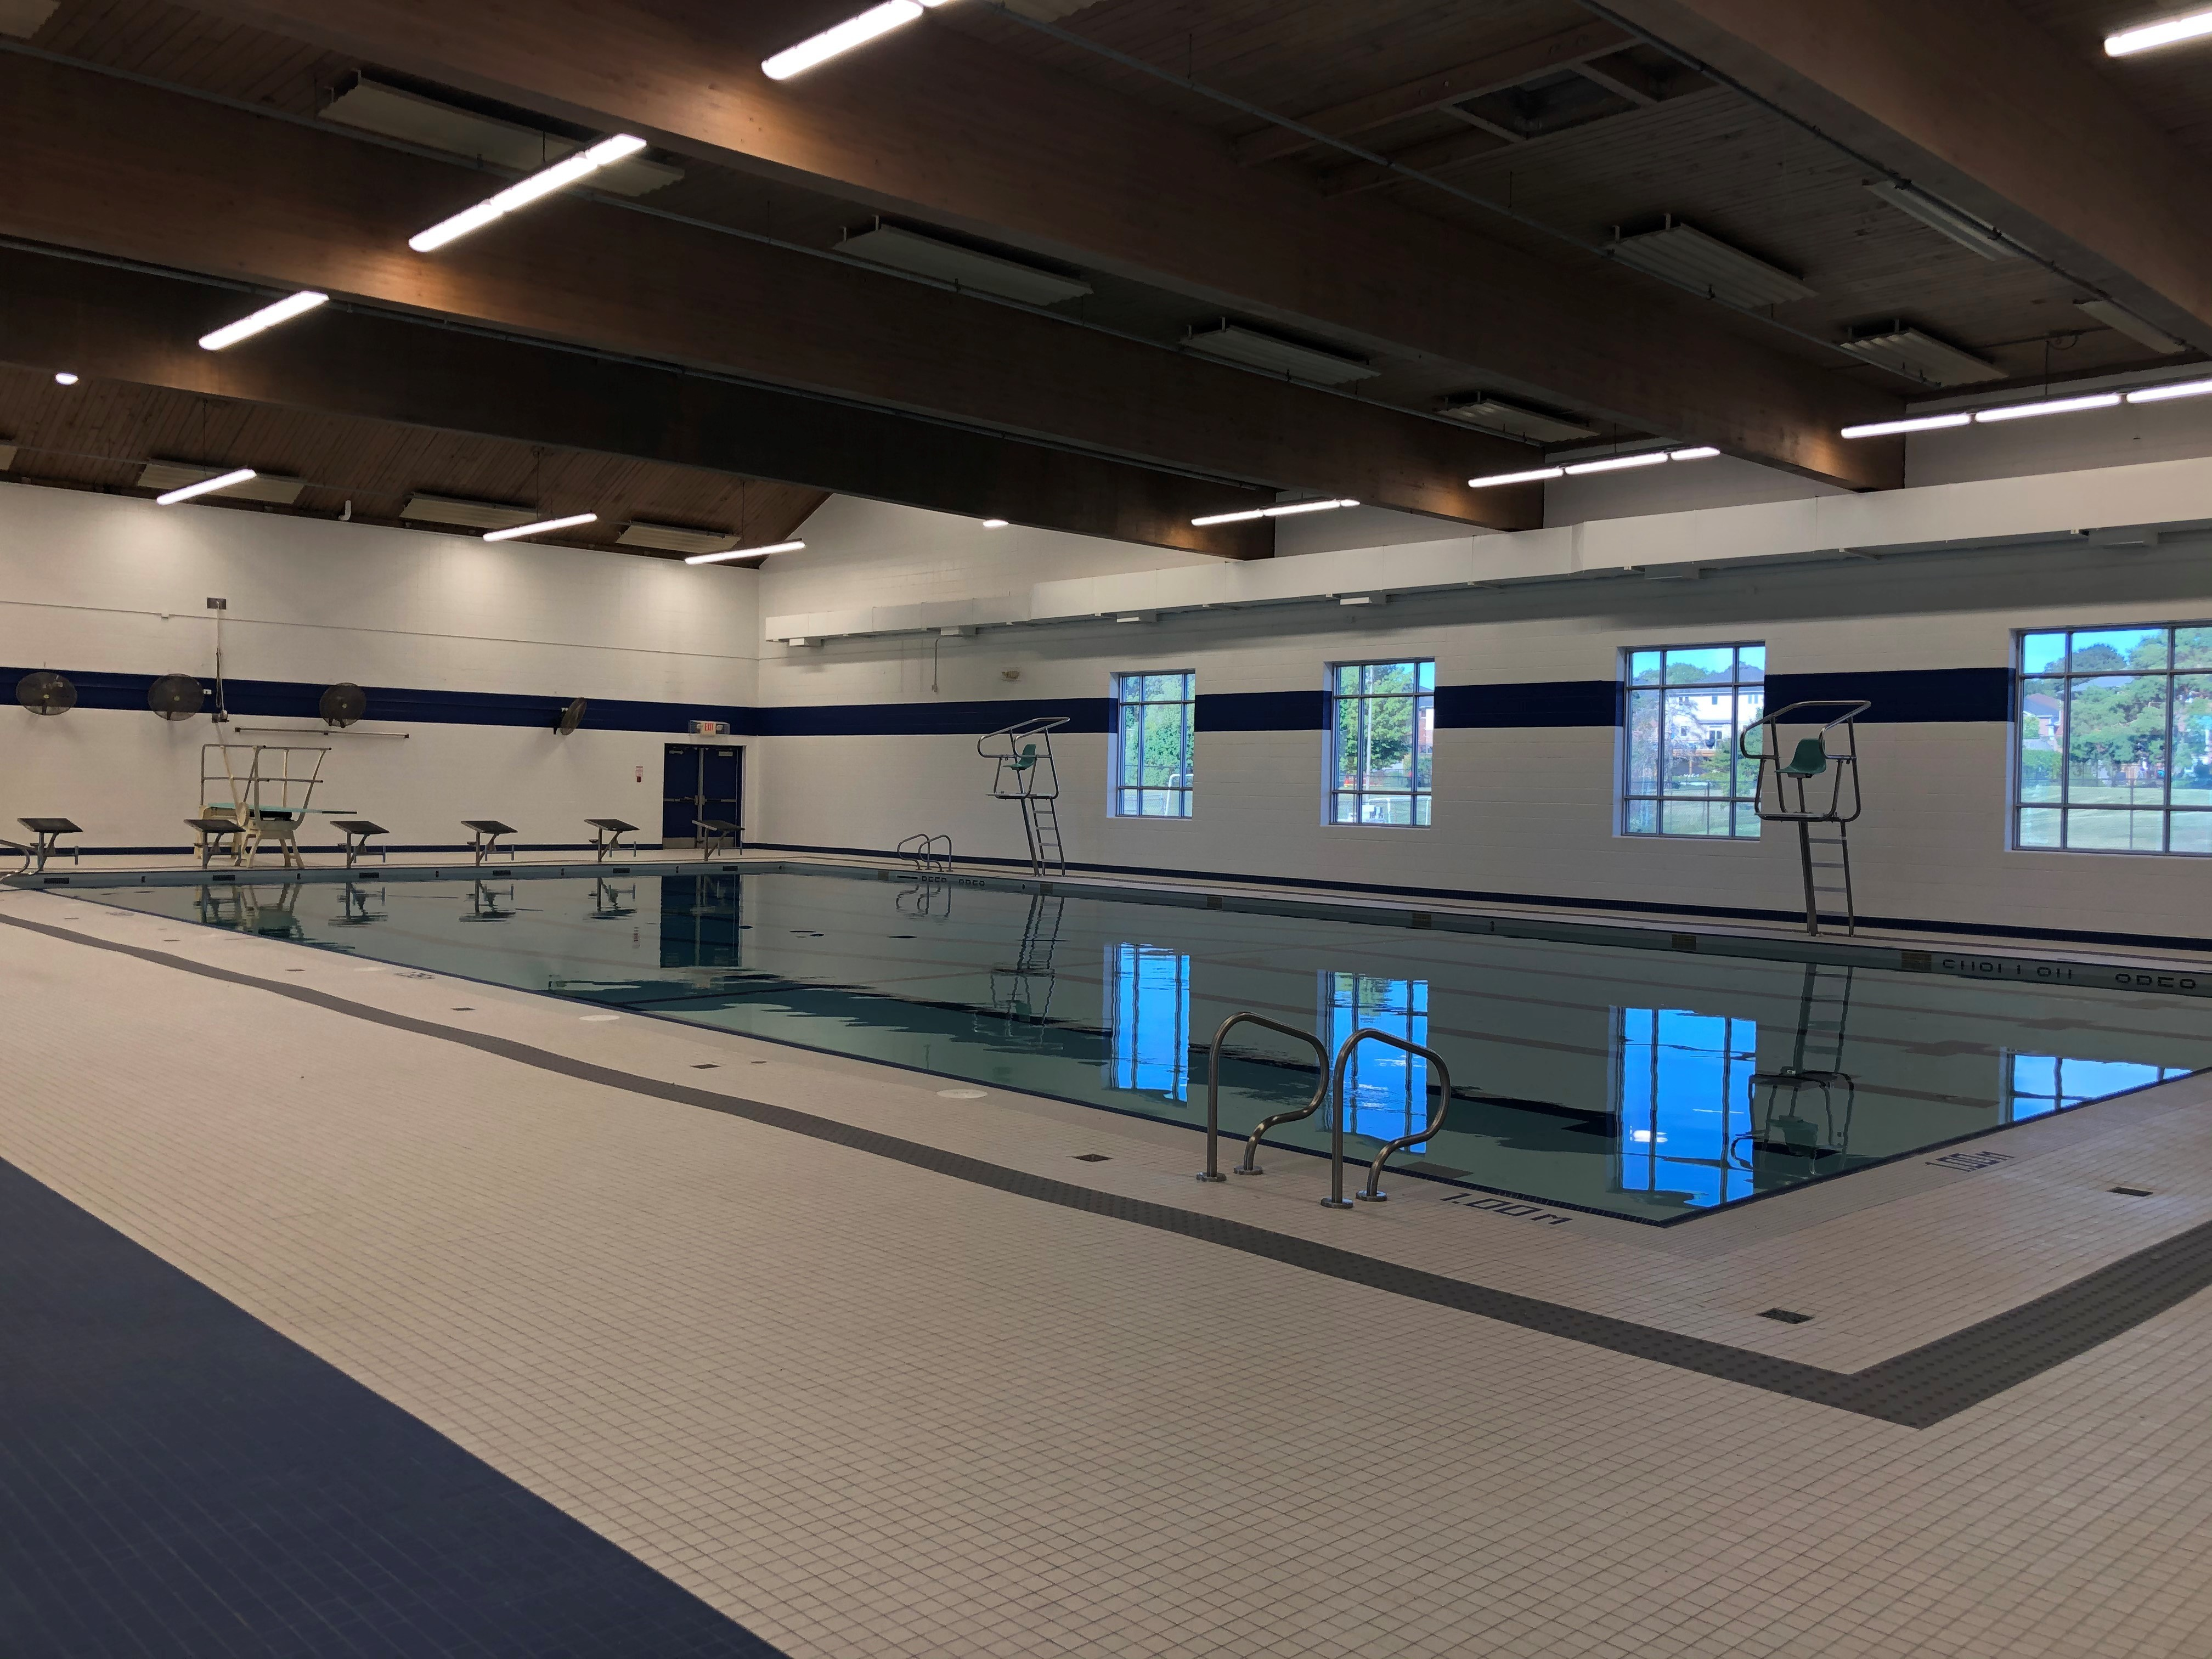 Newly renovated Angela Coughlan Pool